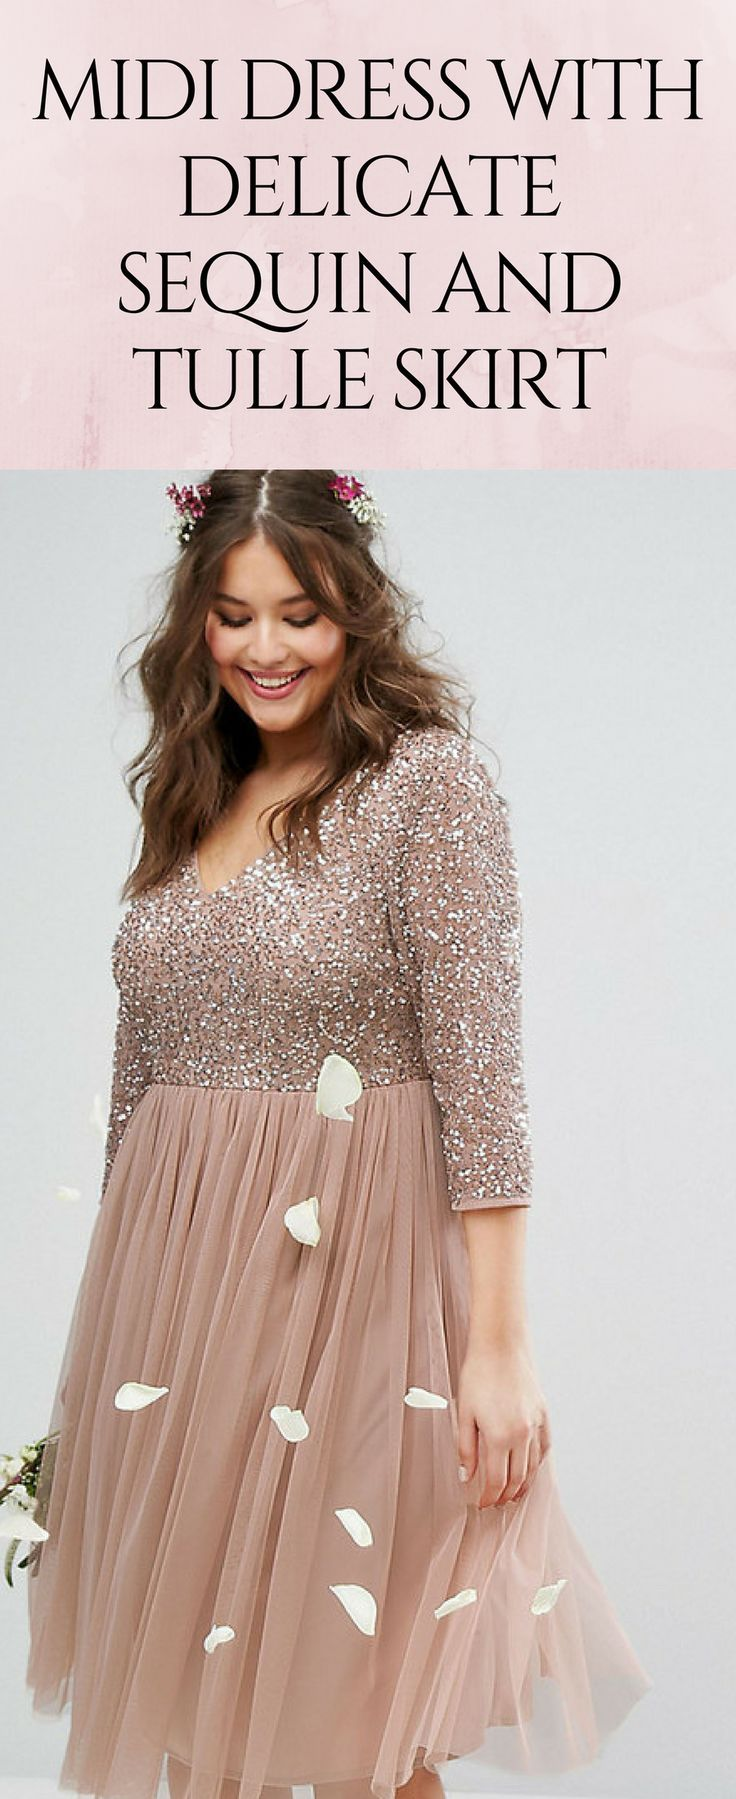 65d347d0 Midi dress with delicate sequin bodice and tulle skirt in pretty, neutral